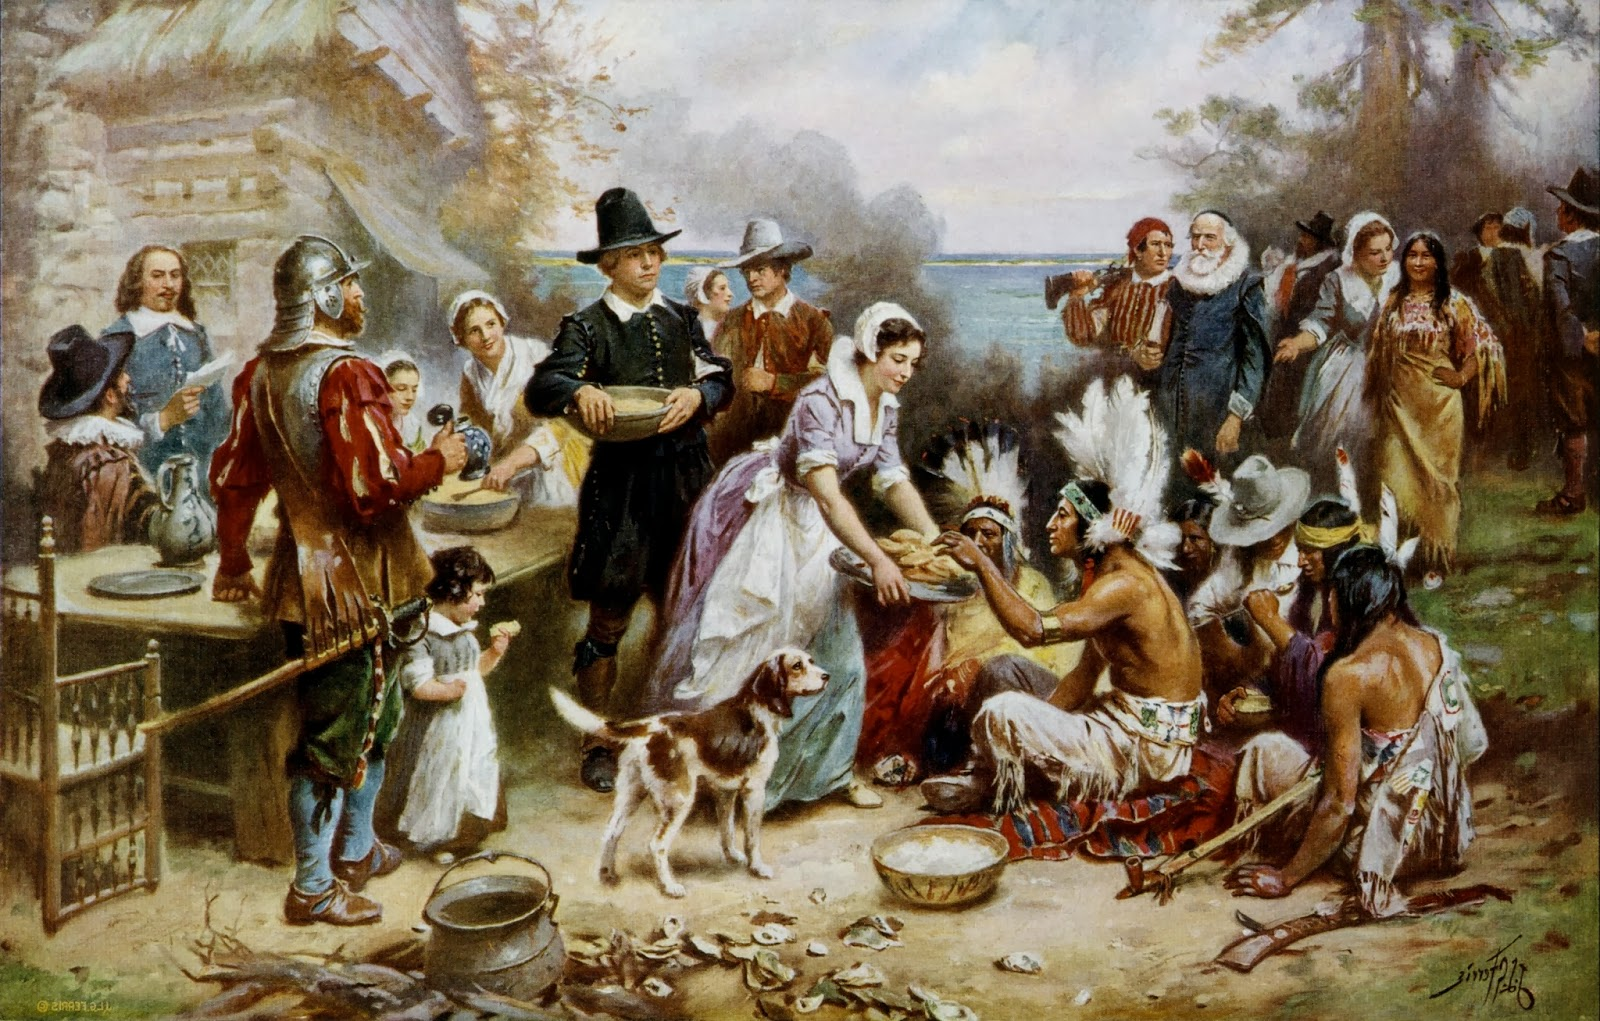 virginians and the puritans